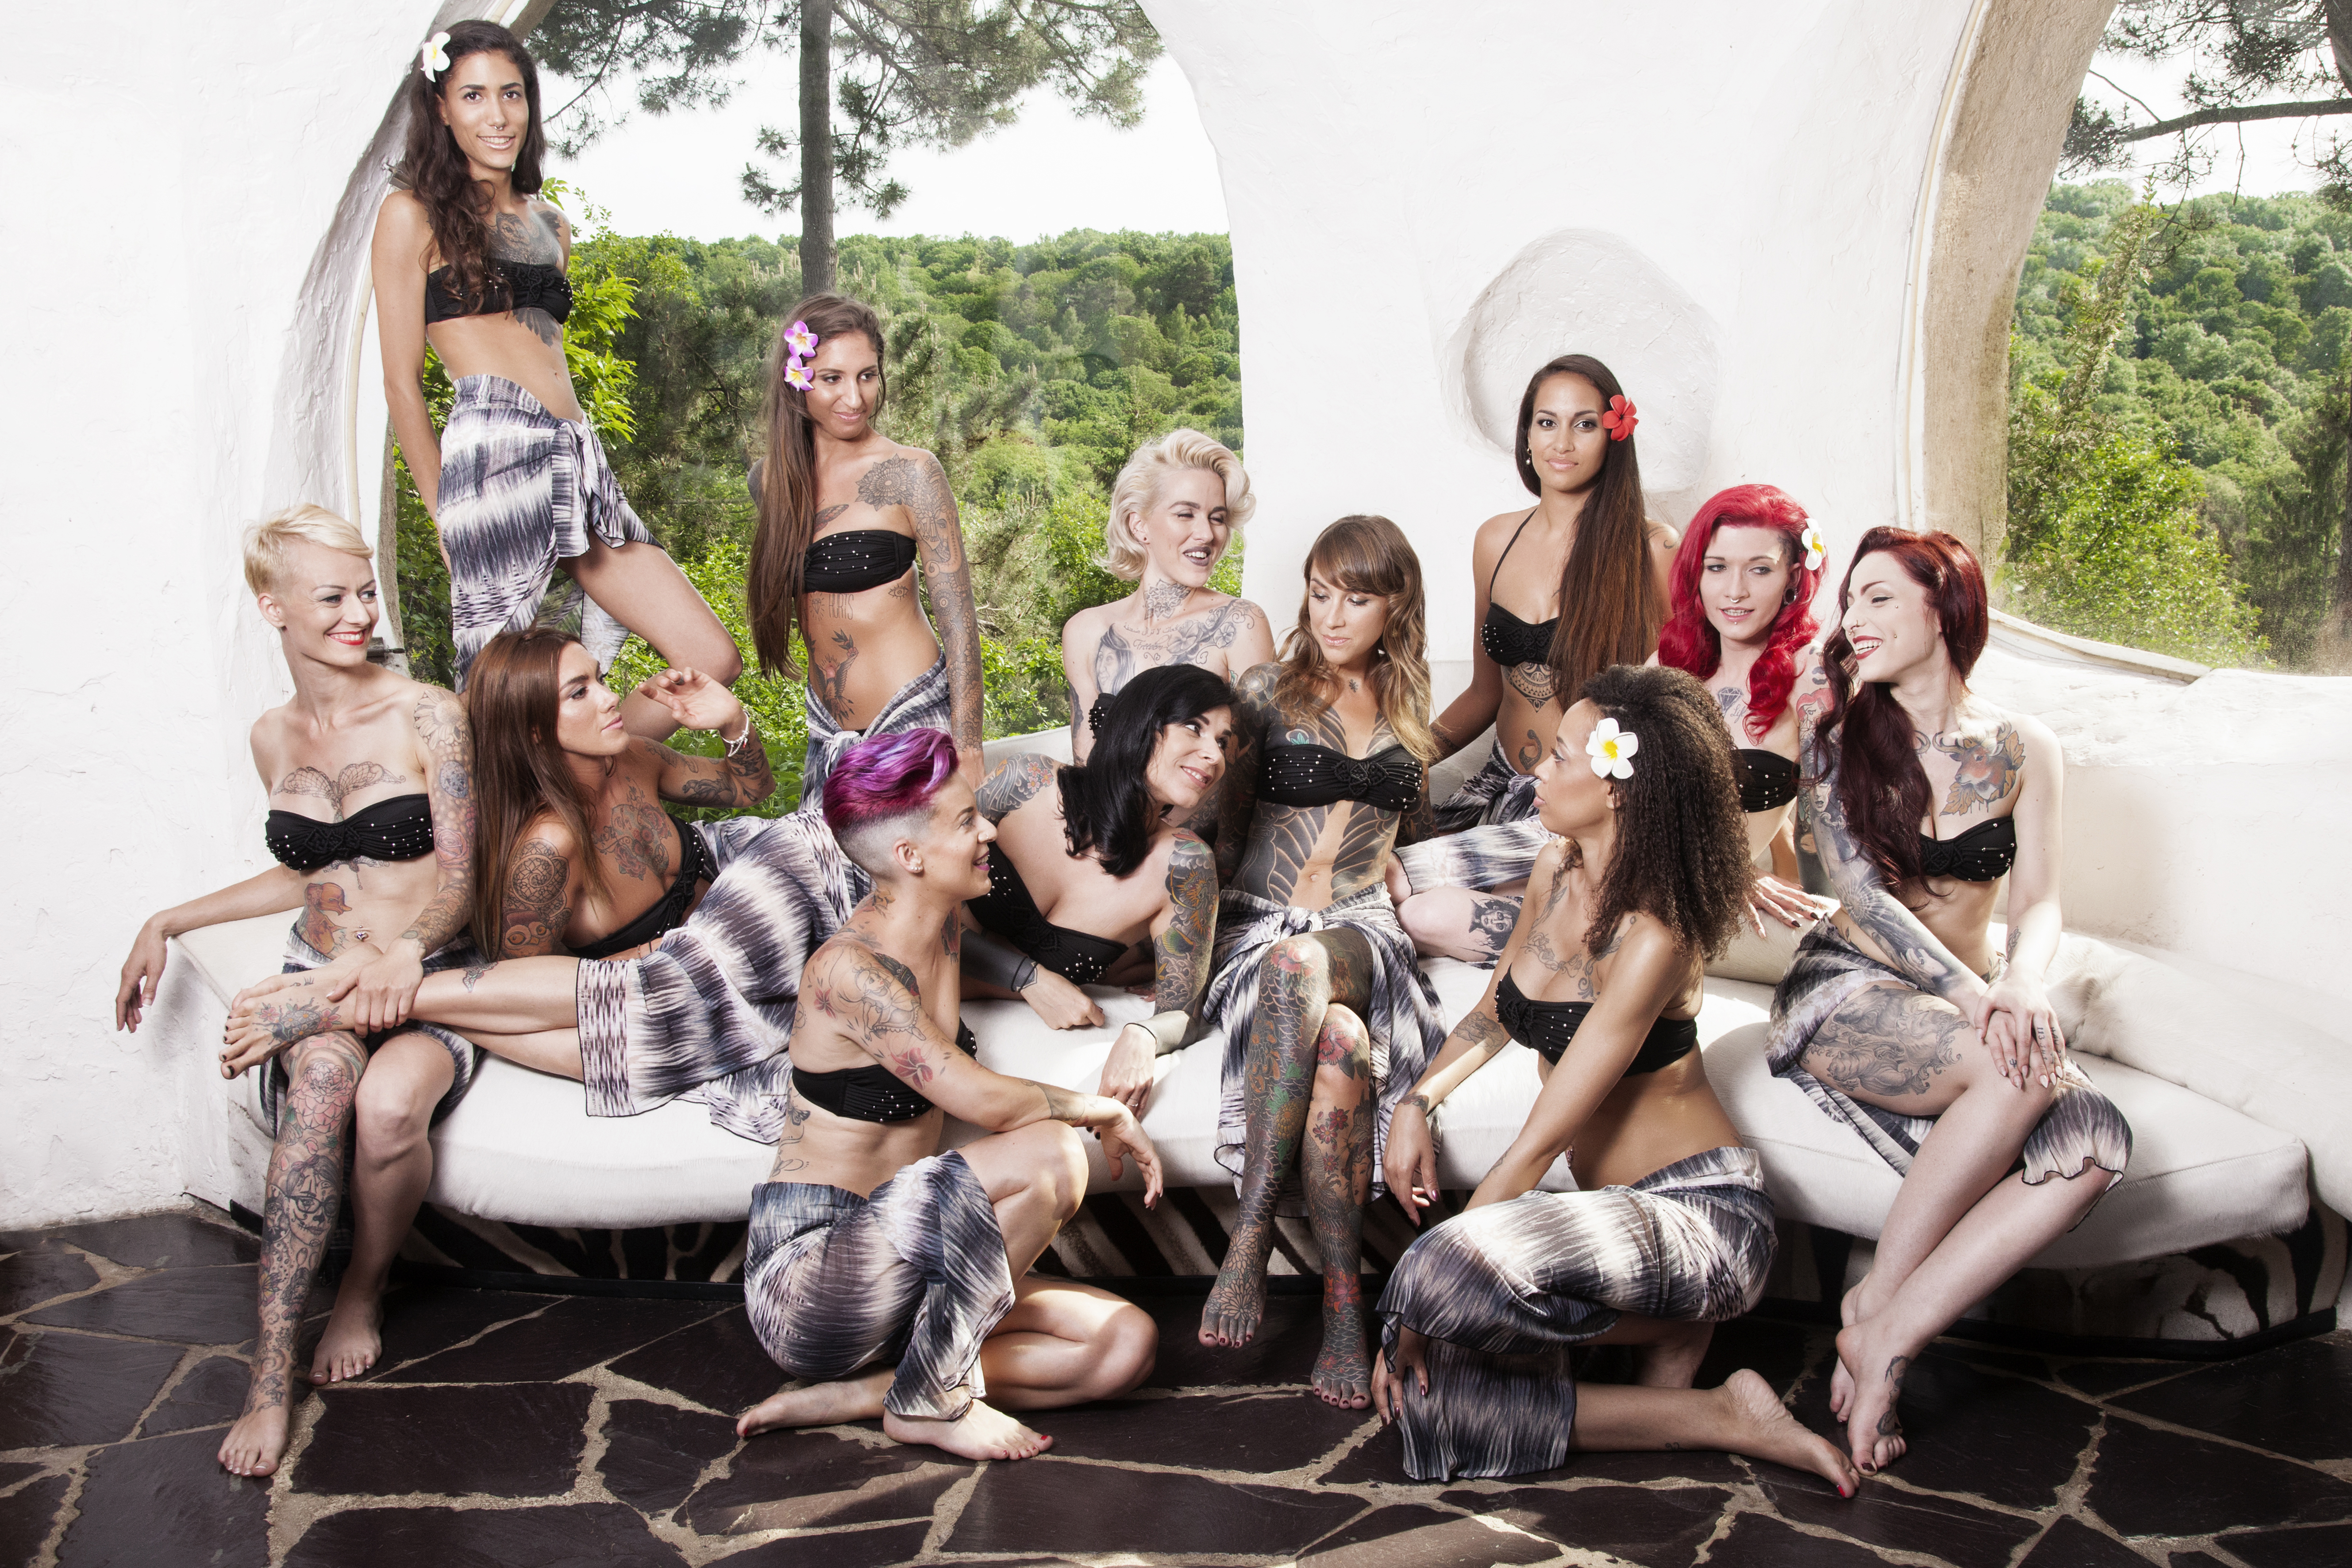 PHOTO OFFICIELLE MISS TATTOO FRANCE 2017